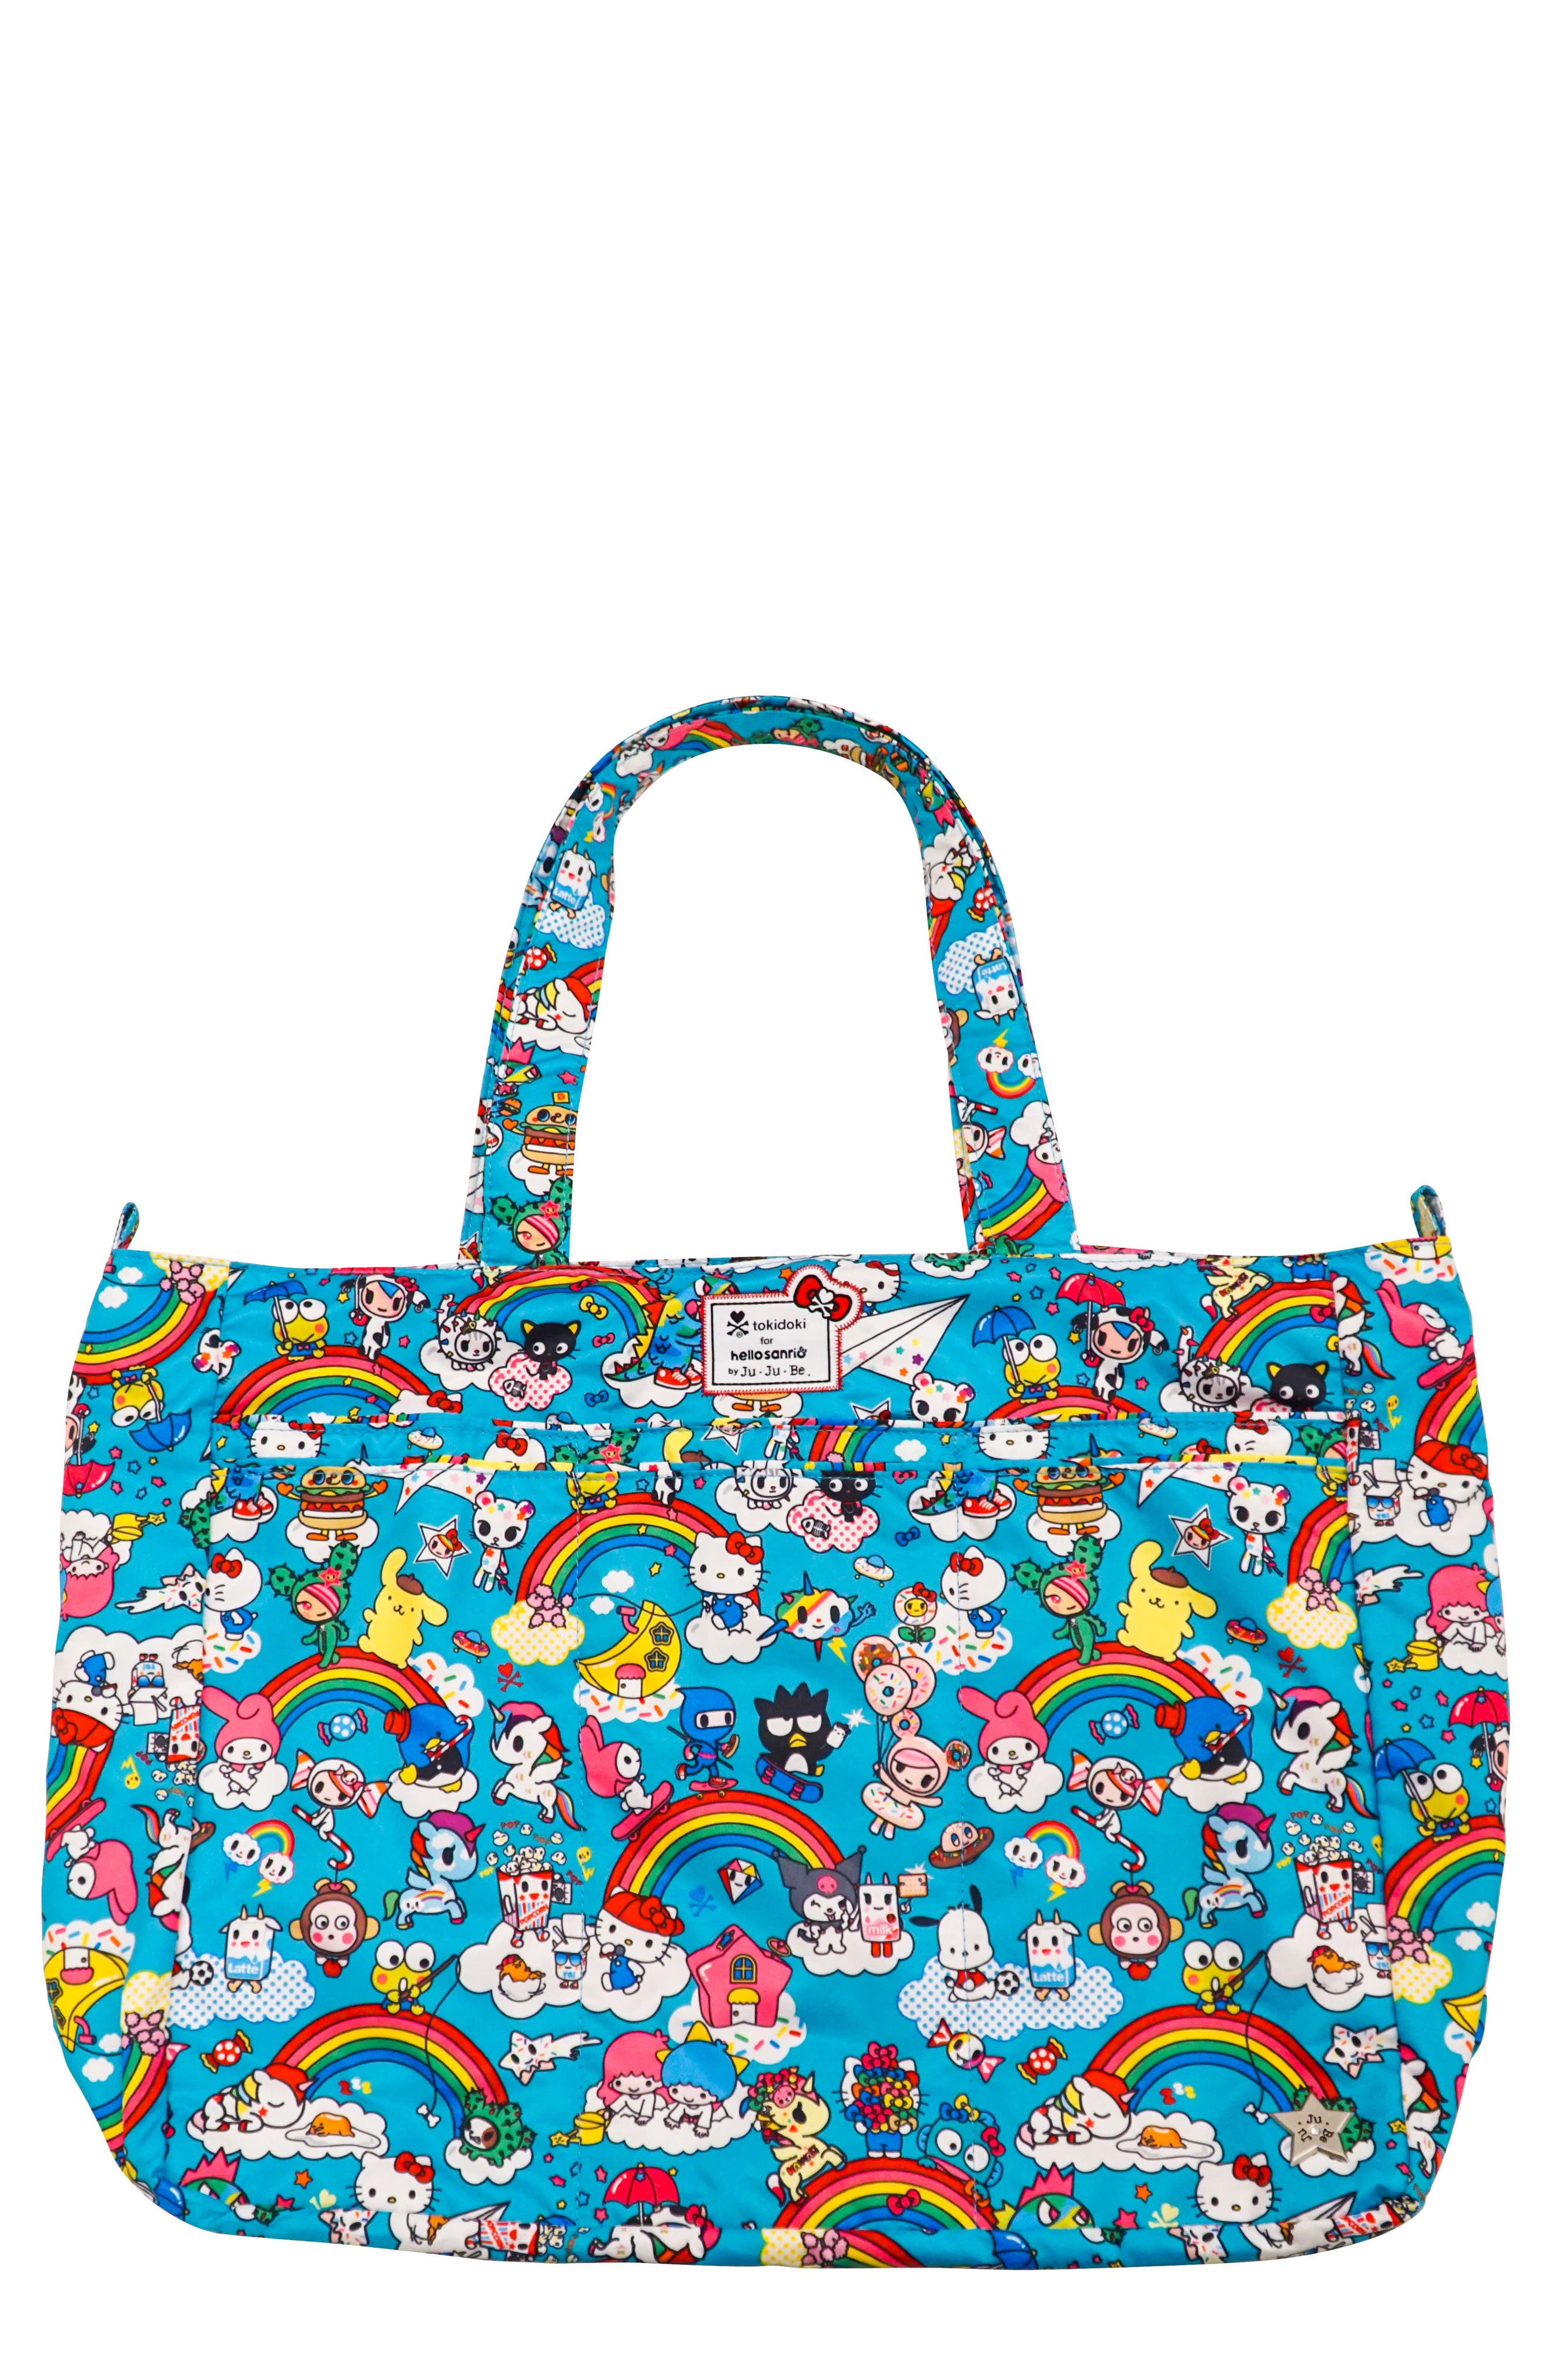 Ju-Ju-Be x tokidoki for Hello Sanrio Rainbow Dreams Be Super Diaper Bag